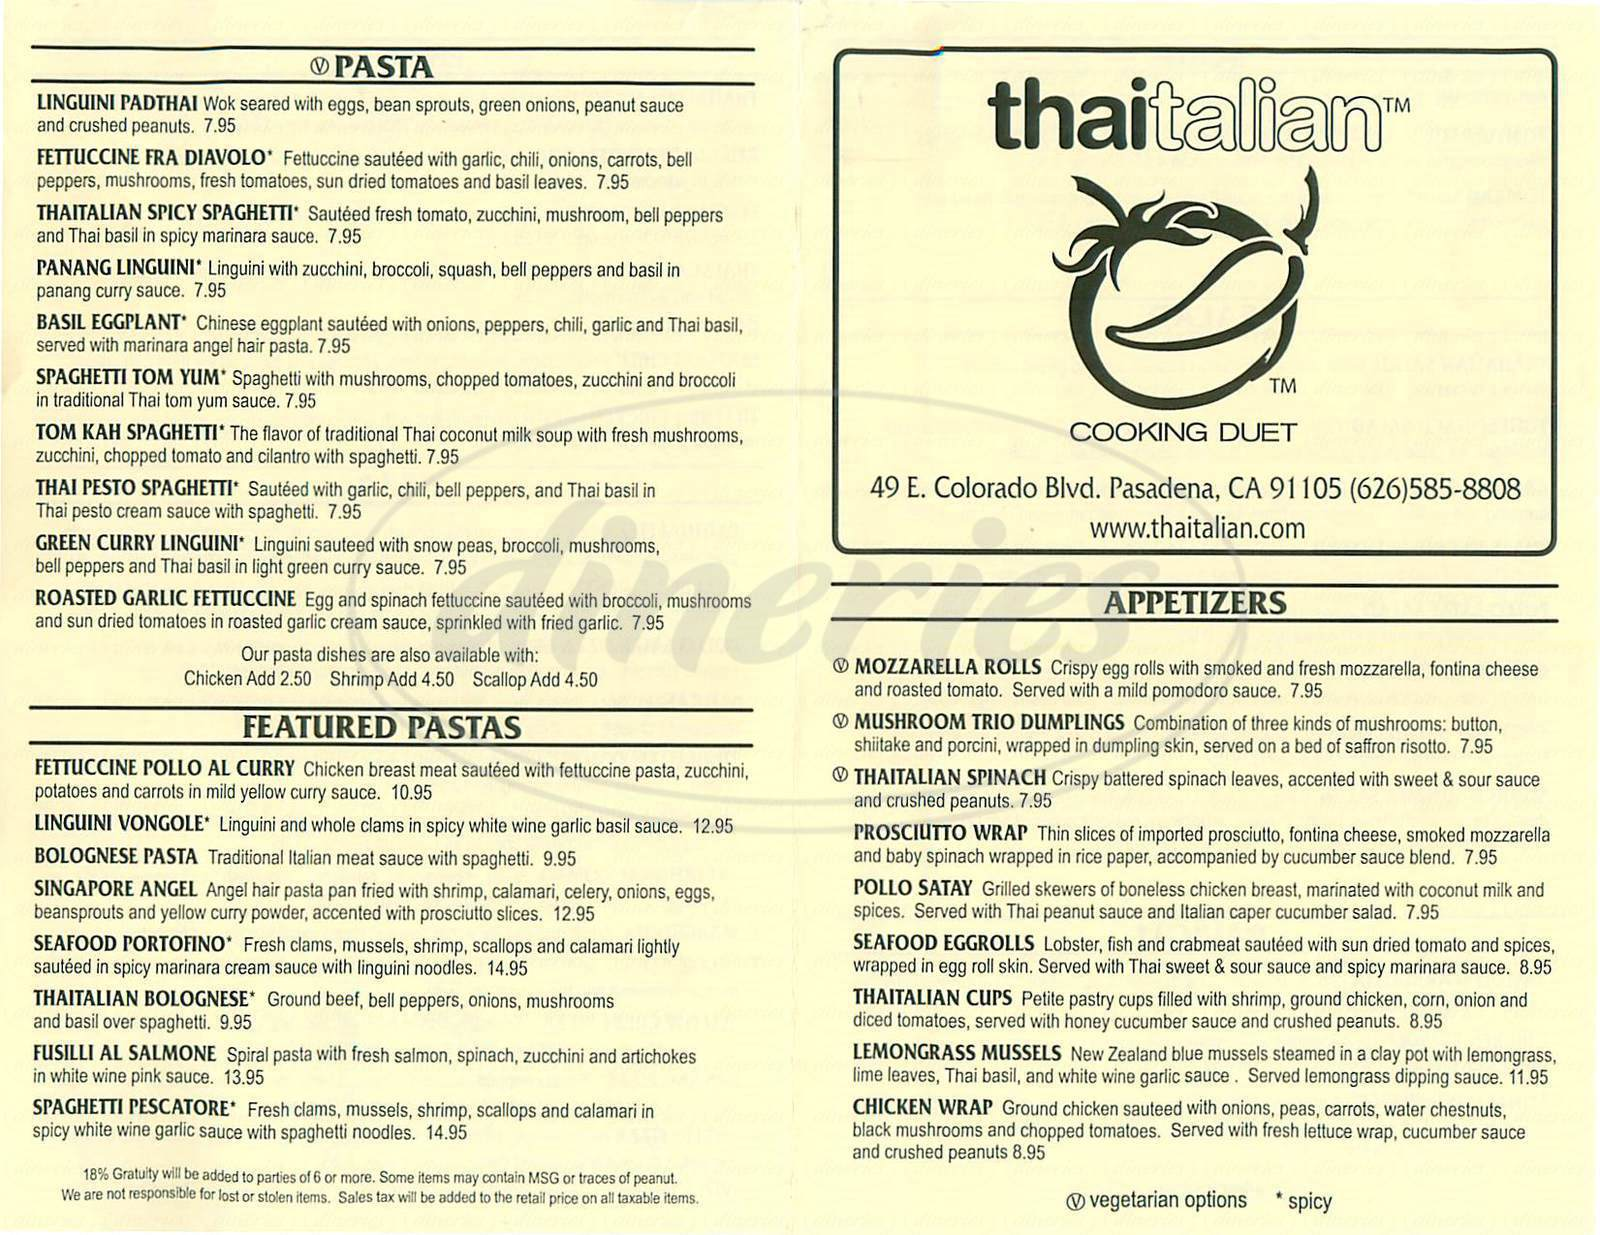 menu for Thaitalian